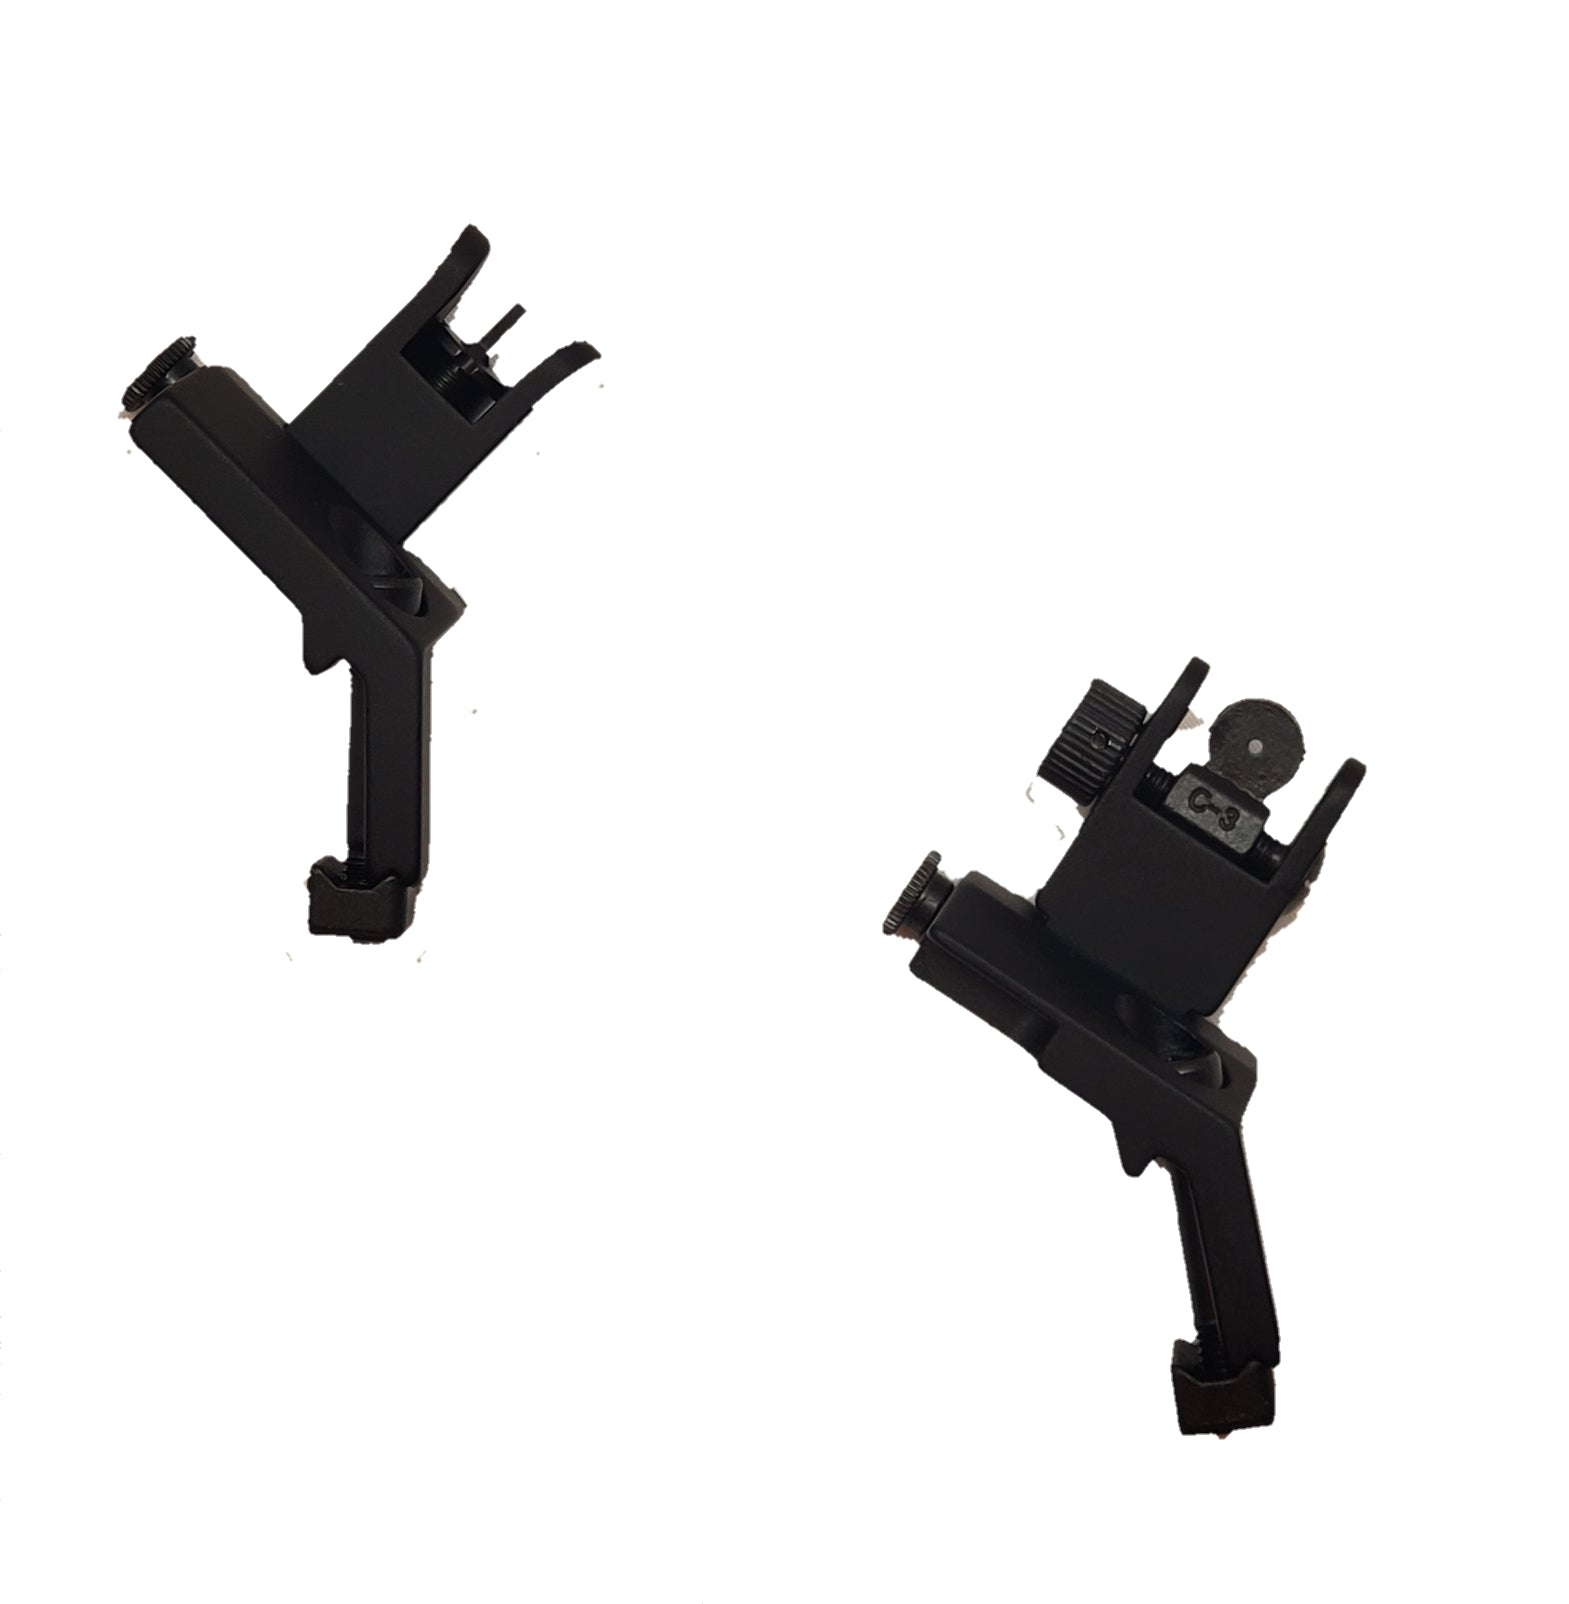 45 Degree Flip Up Offset Iron Sights by AT Tactical